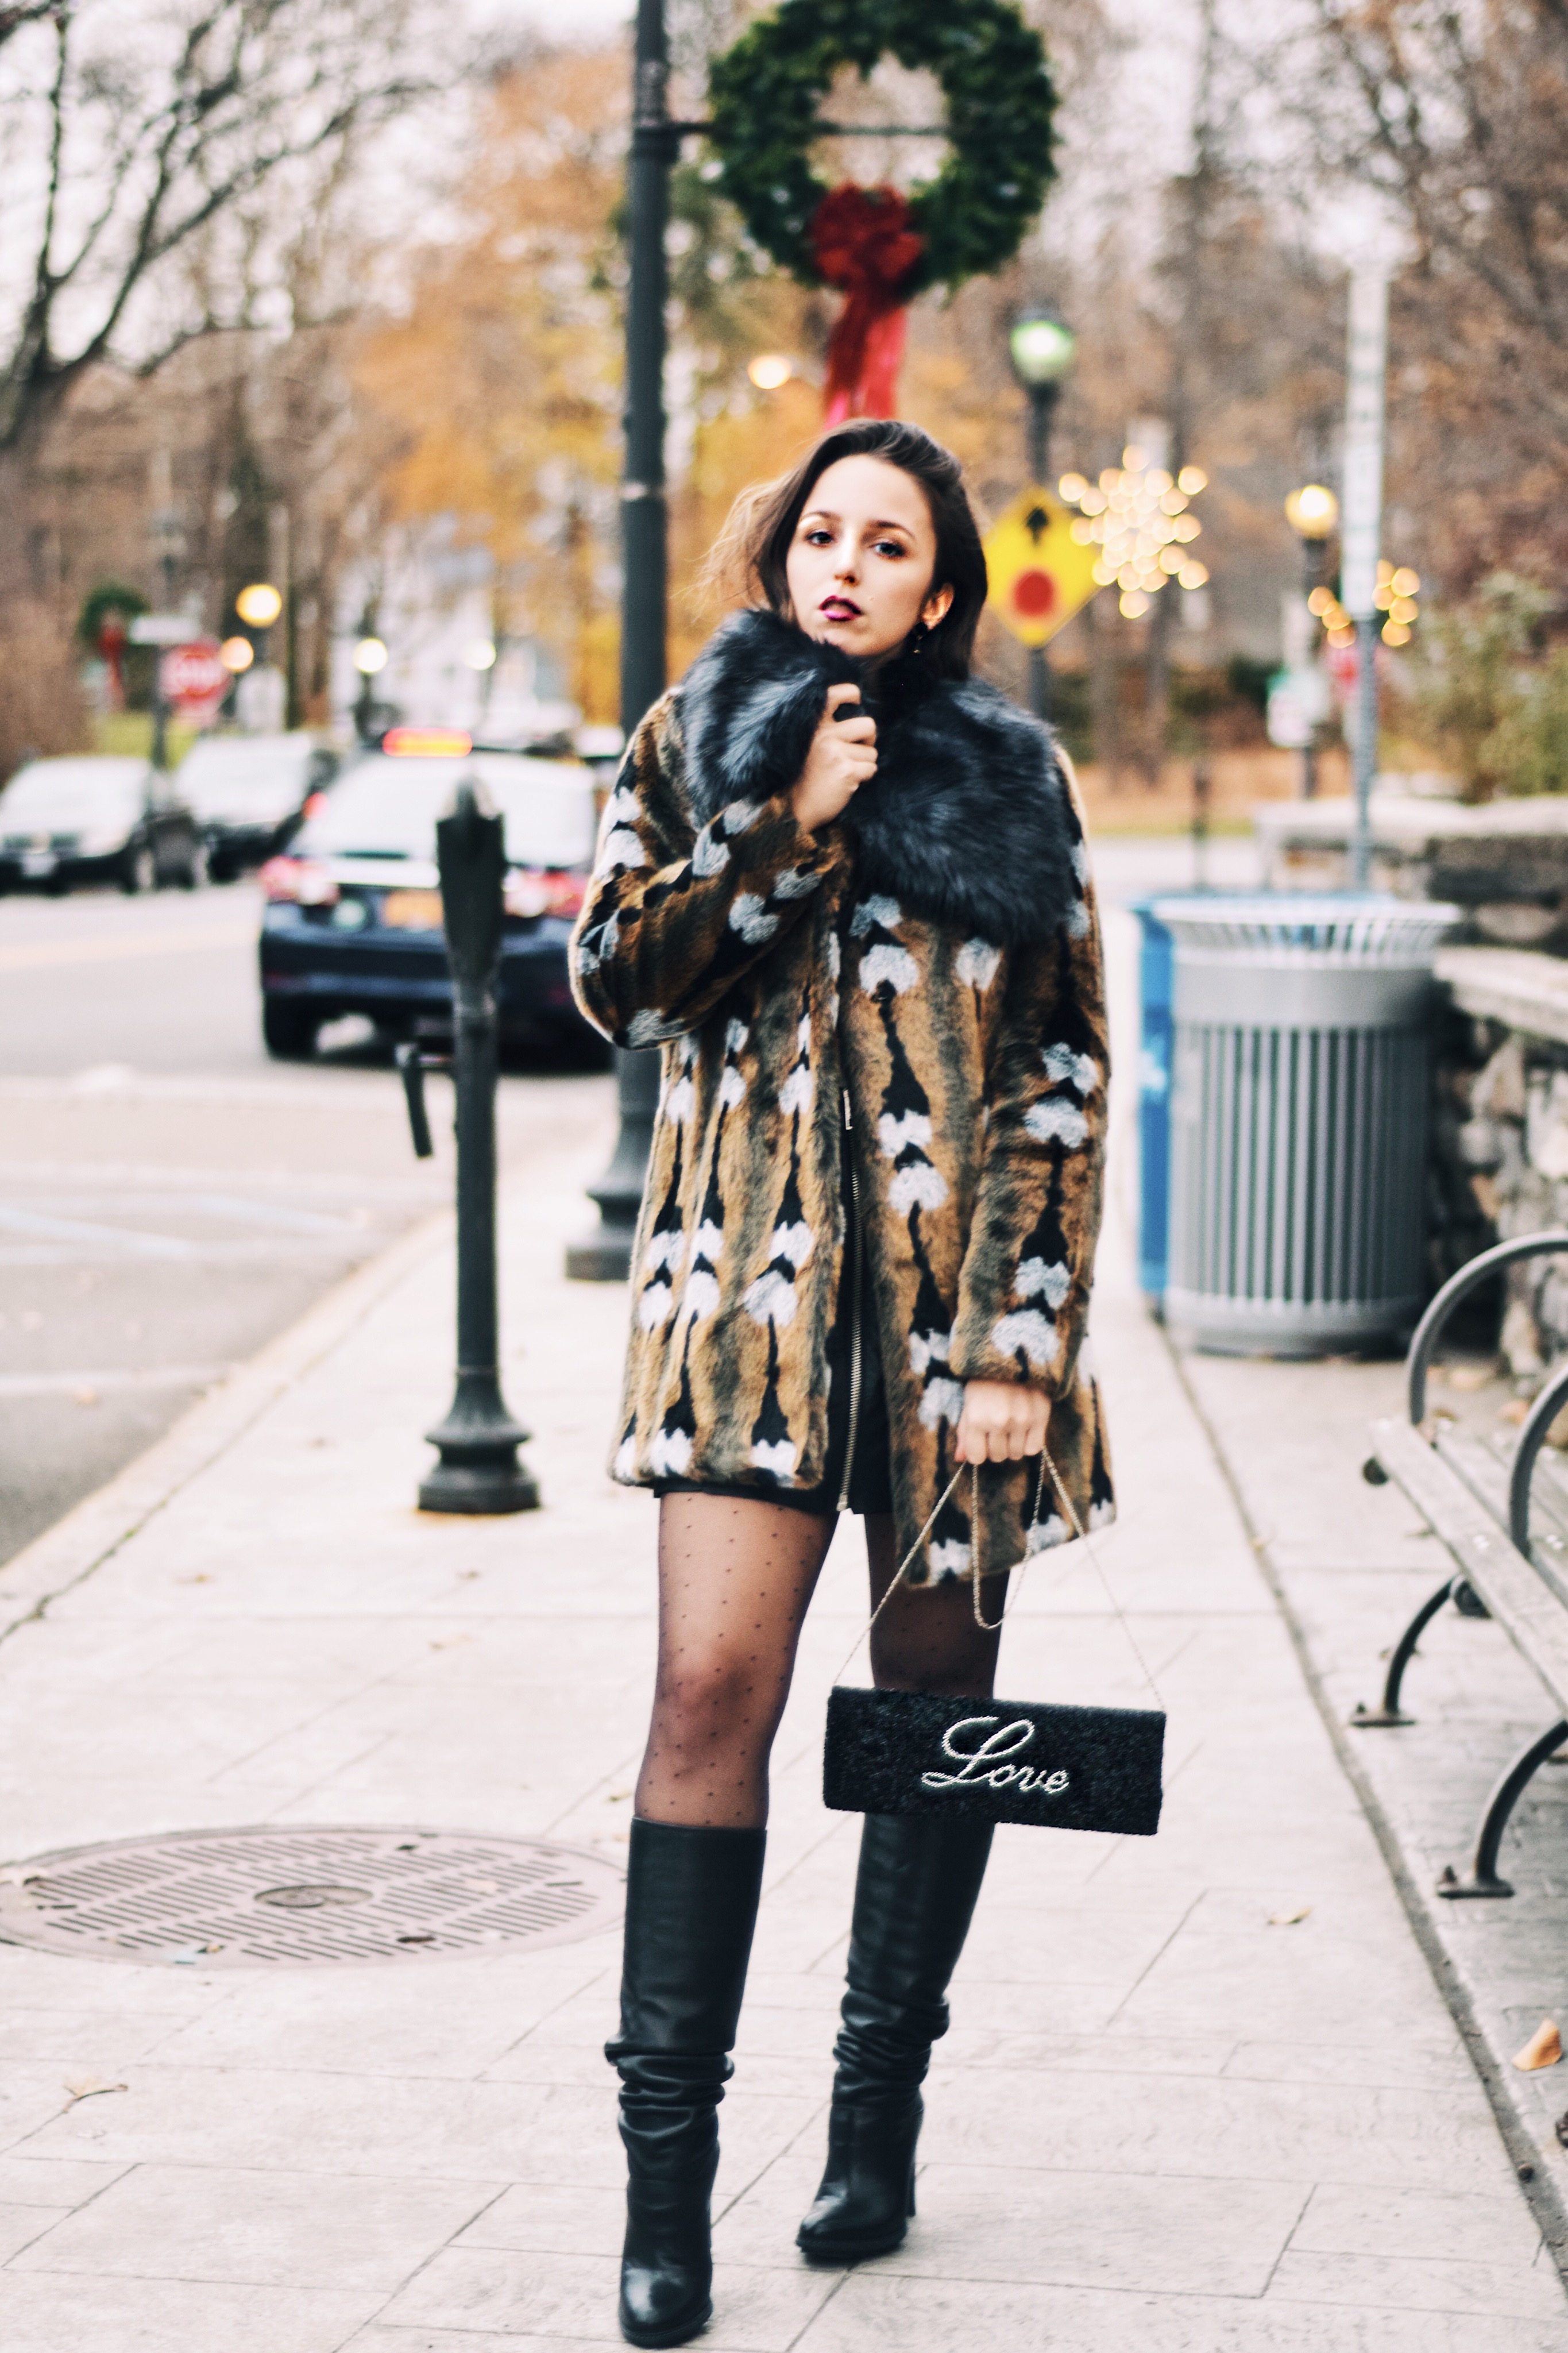 island to east side-clutch-unreal fur-style-outfit-blogger-love clutch-beaded-lace-new york